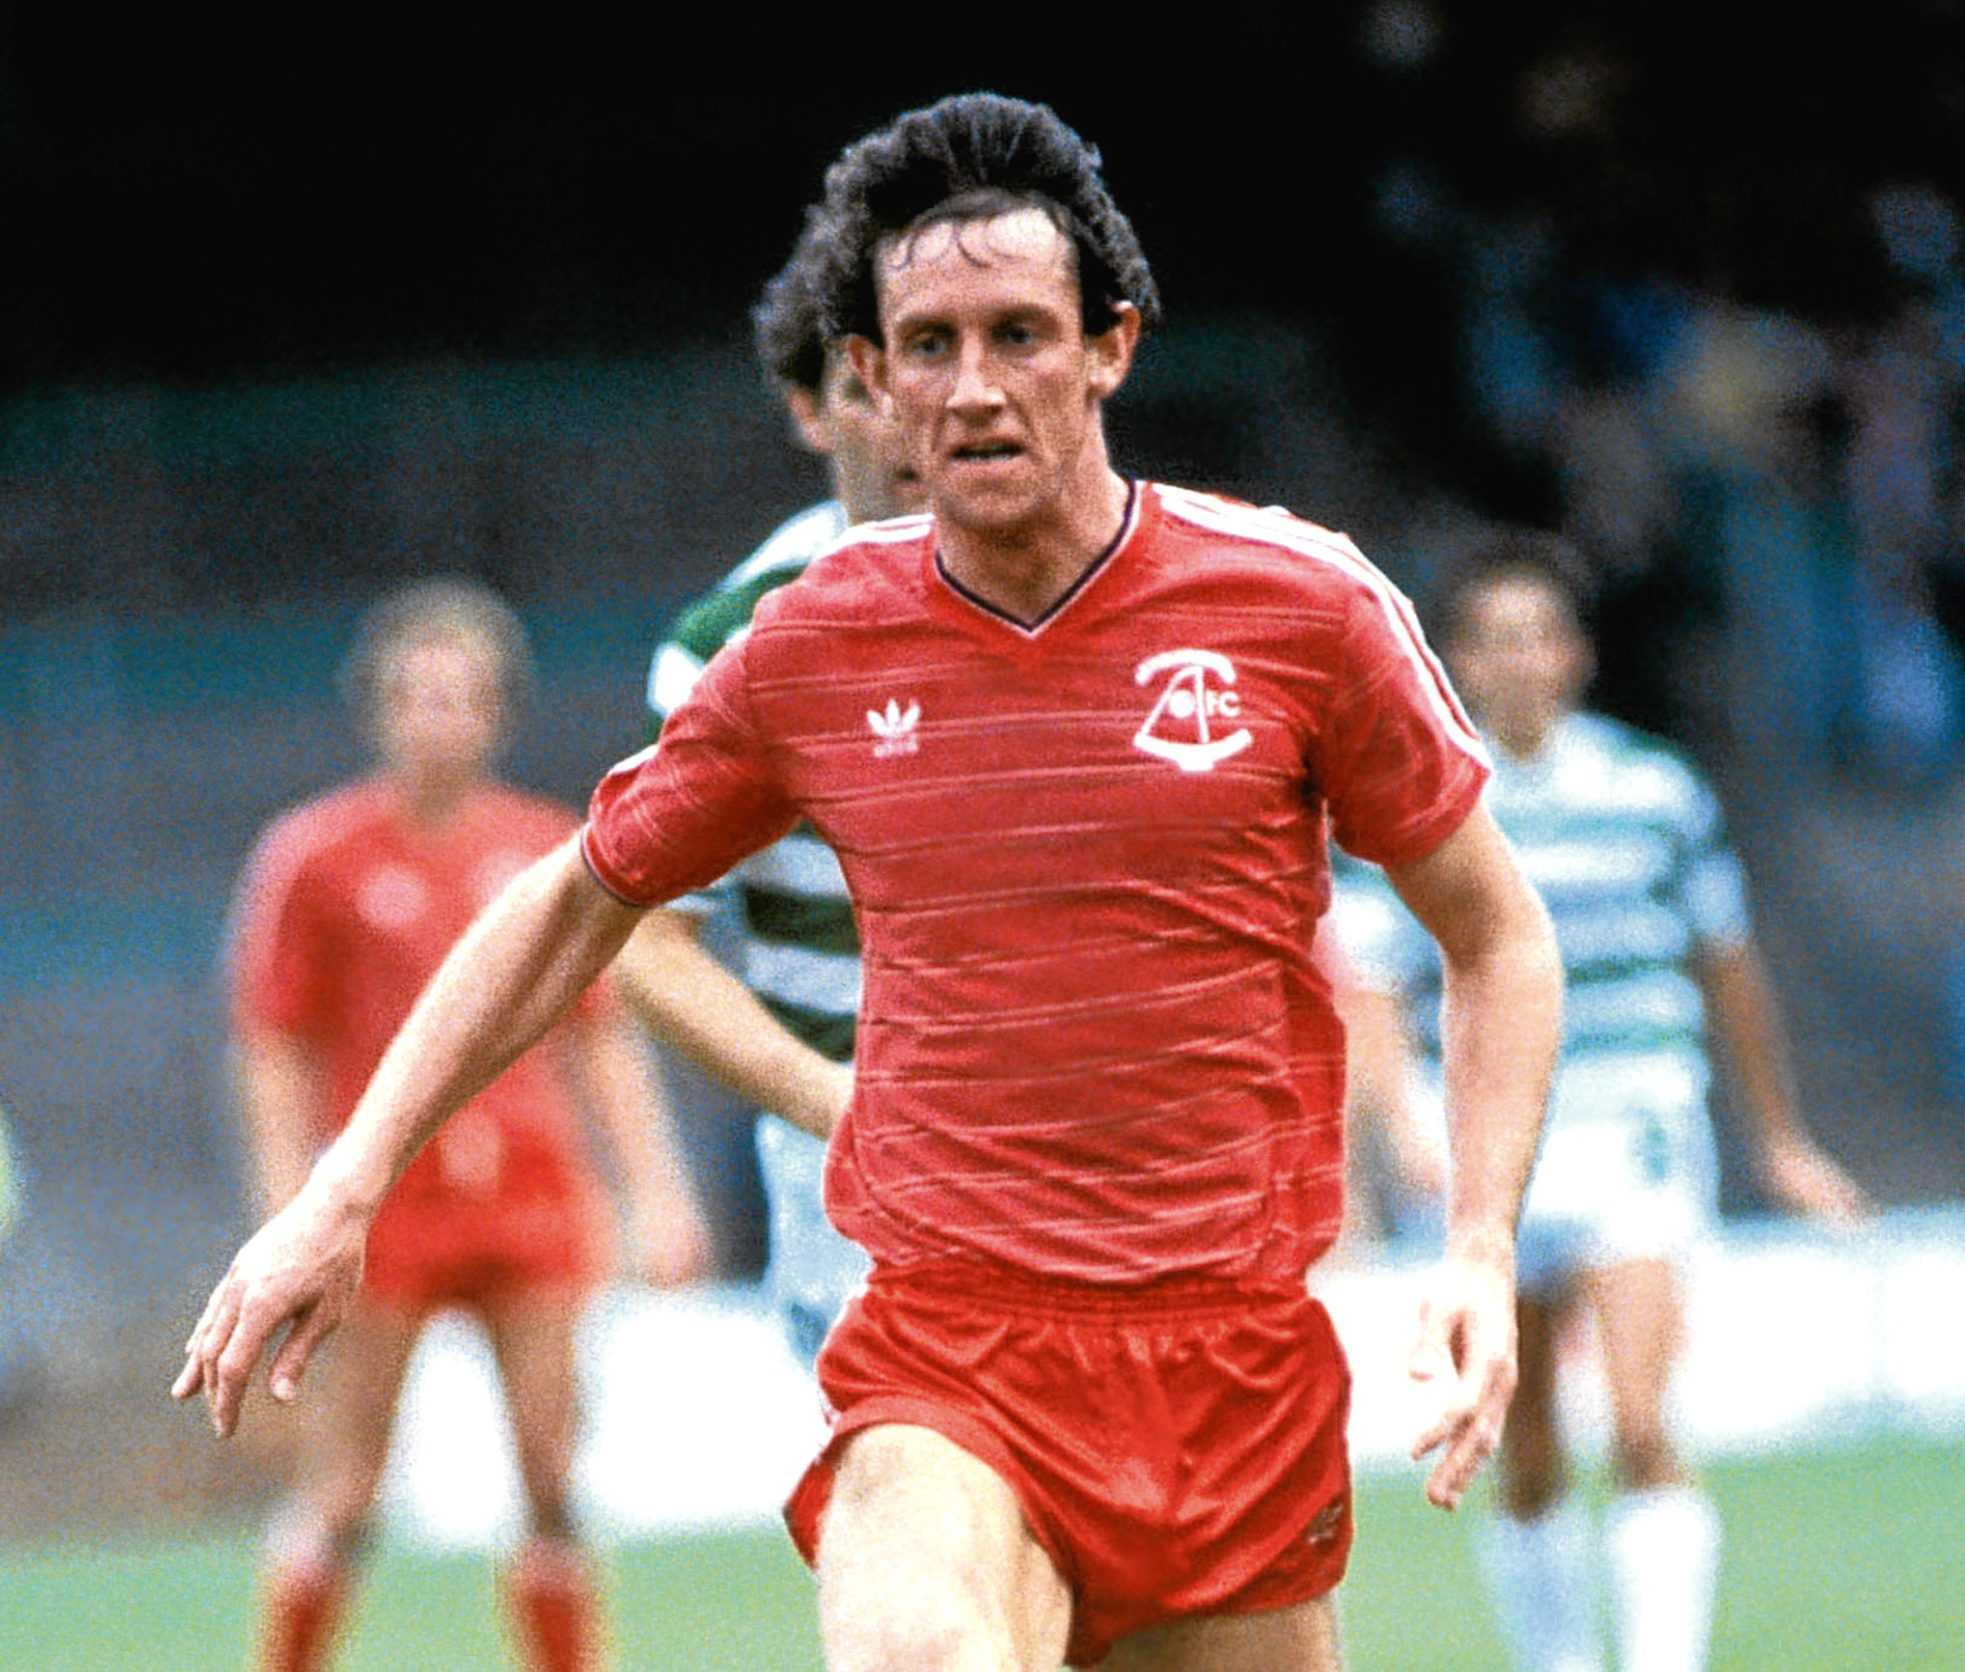 Billy Stark in his Aberdeen playing days.